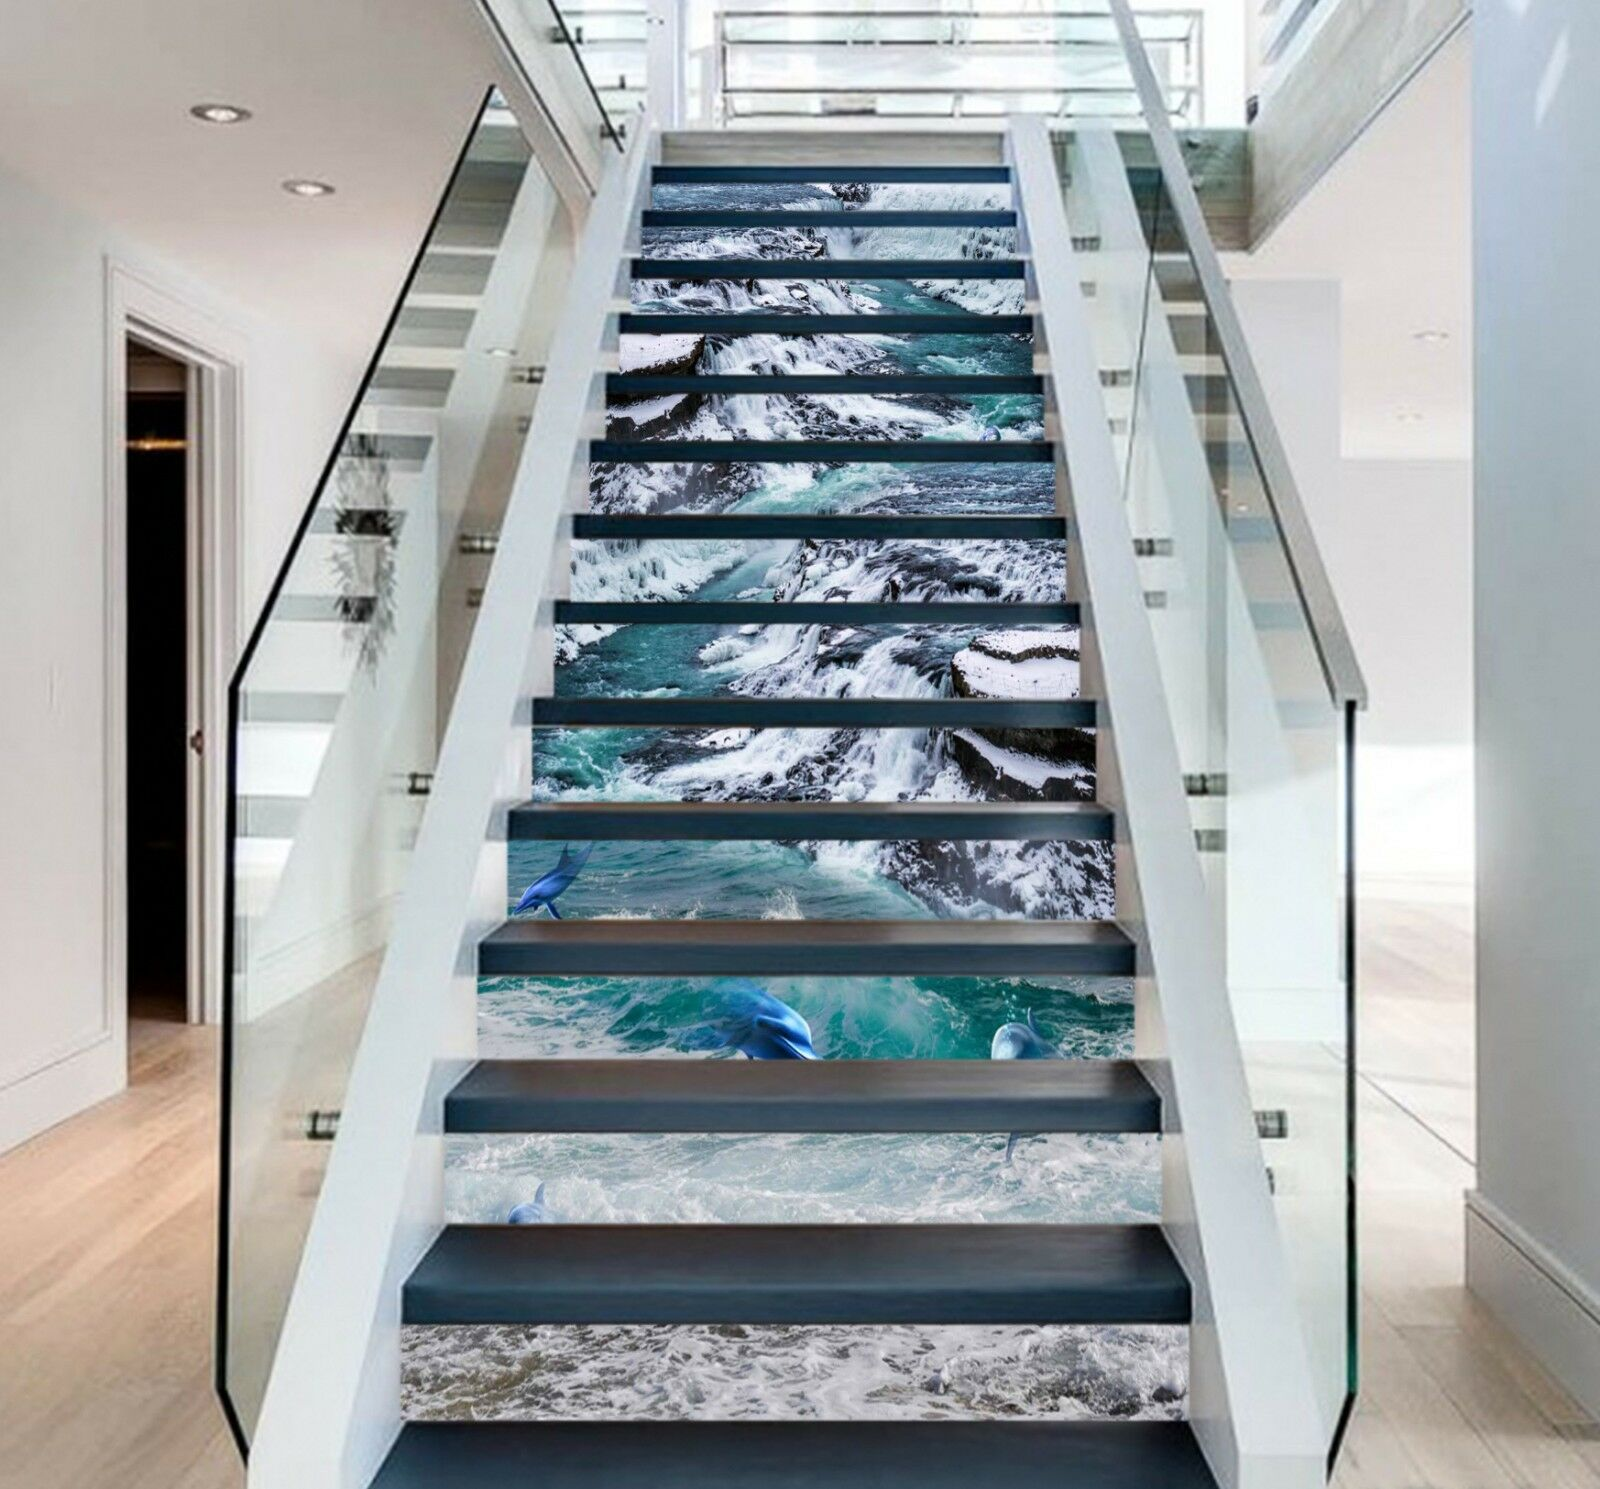 3D Waves Dolphhin Stair Risers Decoration Photo Mural Vinyl Decal Wallpaper CA